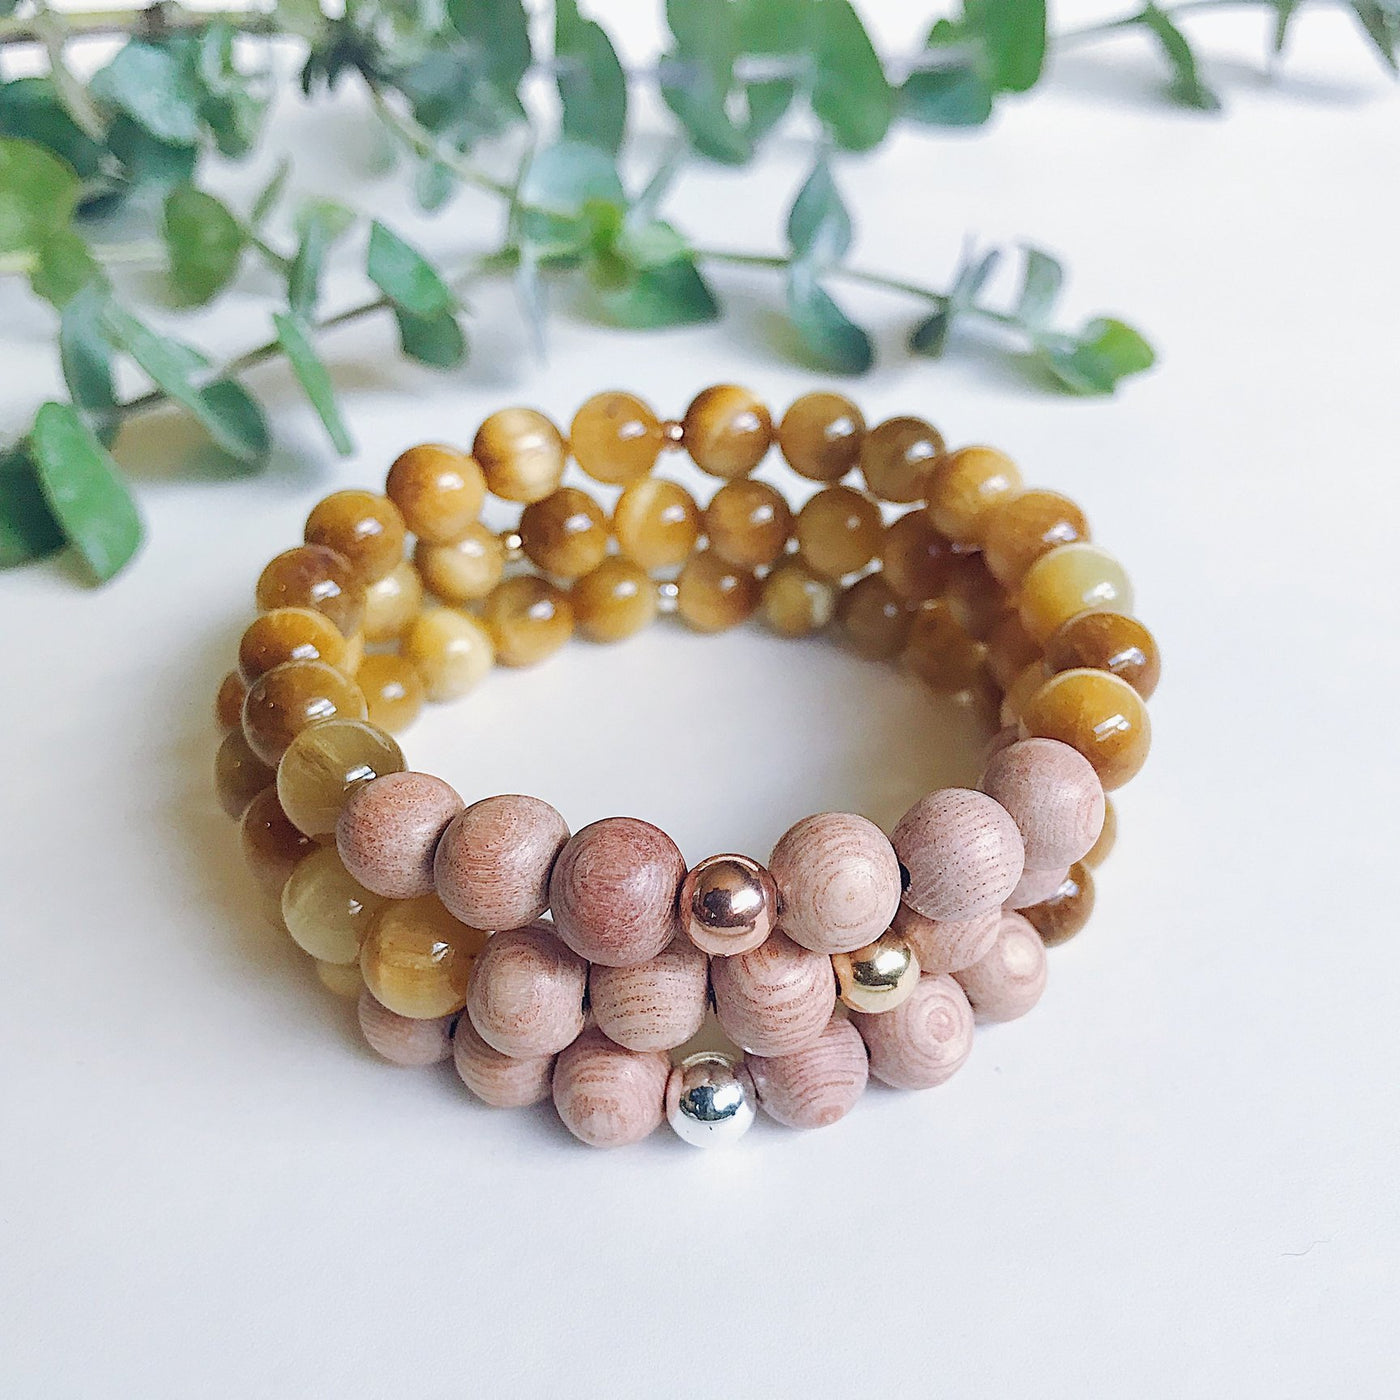 Gold Tigers Eye + Rosewood Mala Bracelet